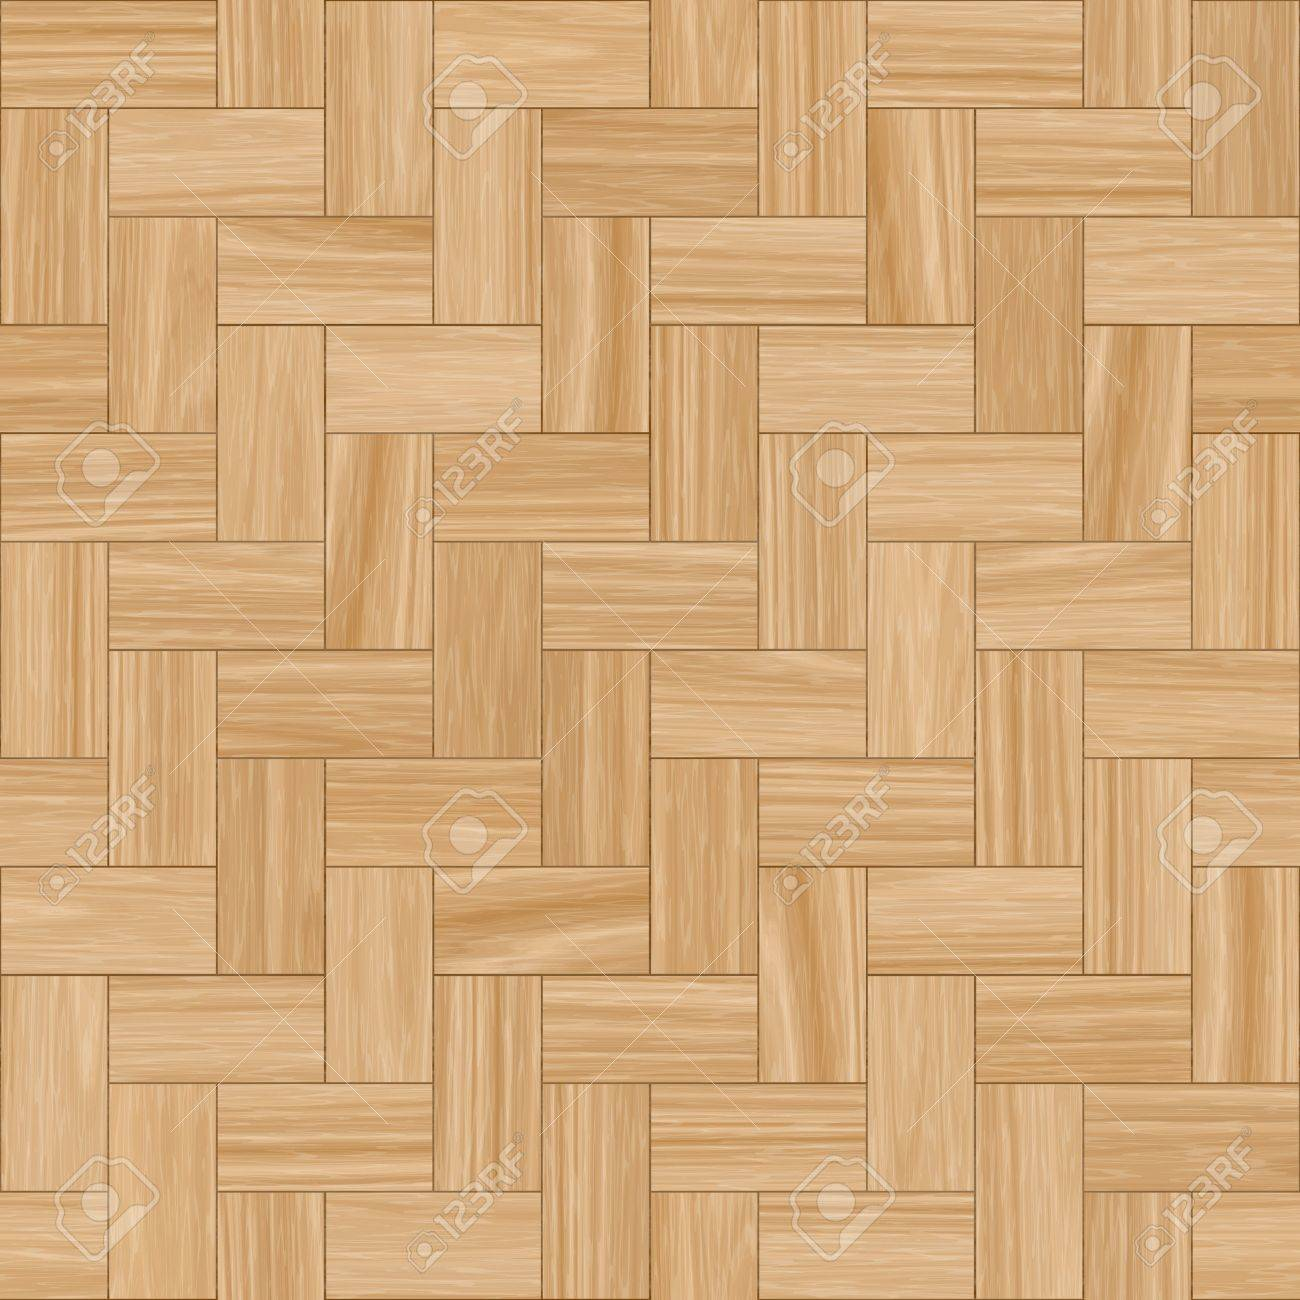 Smooth Wood Parquet Clean Floor Tiles Background Stock Photo